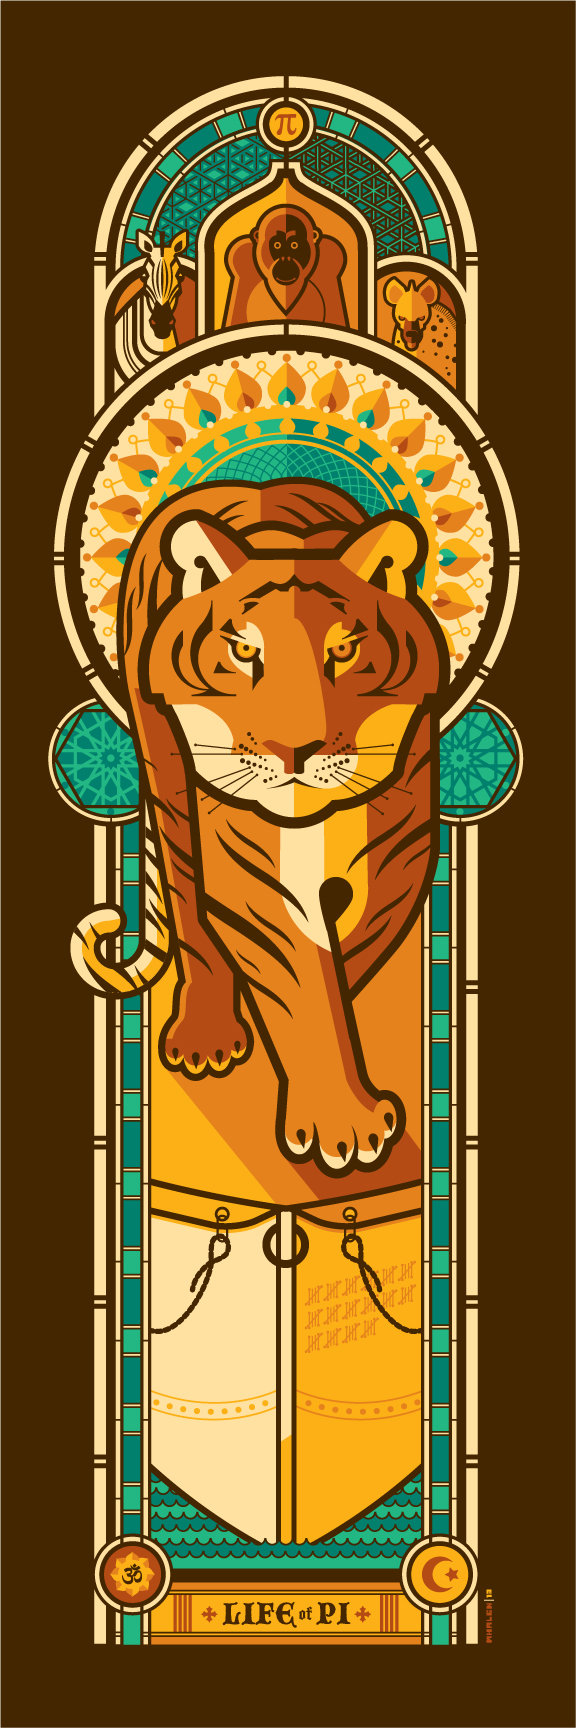 LIFE OF PI by artist Tom Whalen18x24 screen print